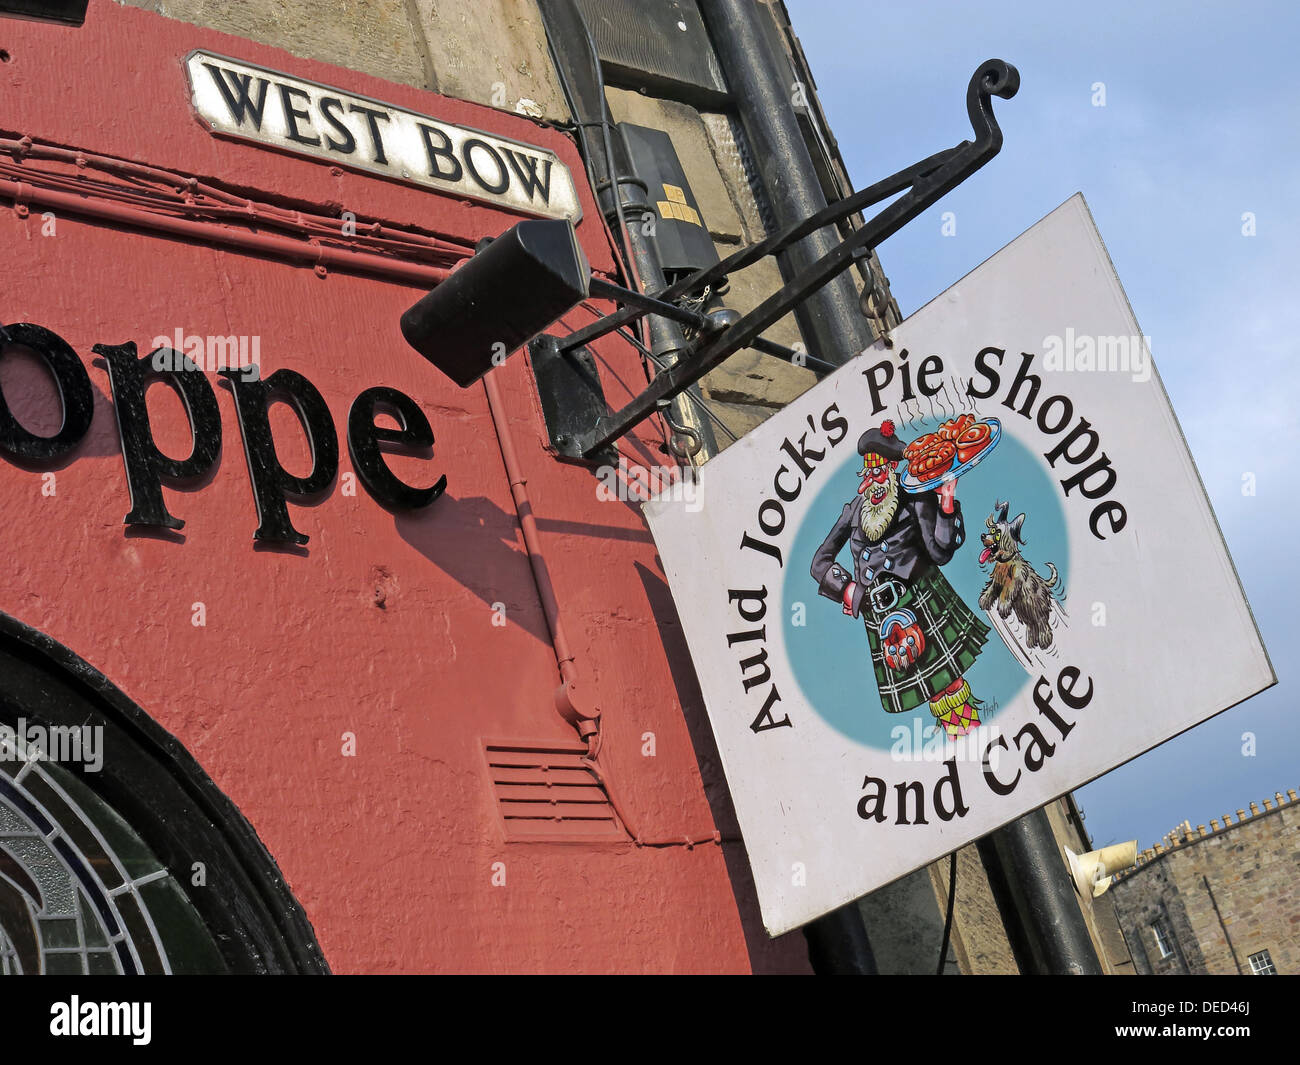 Auld Jocks Pie Shoppe and cafe Edinburgh Scotland - Stock Image